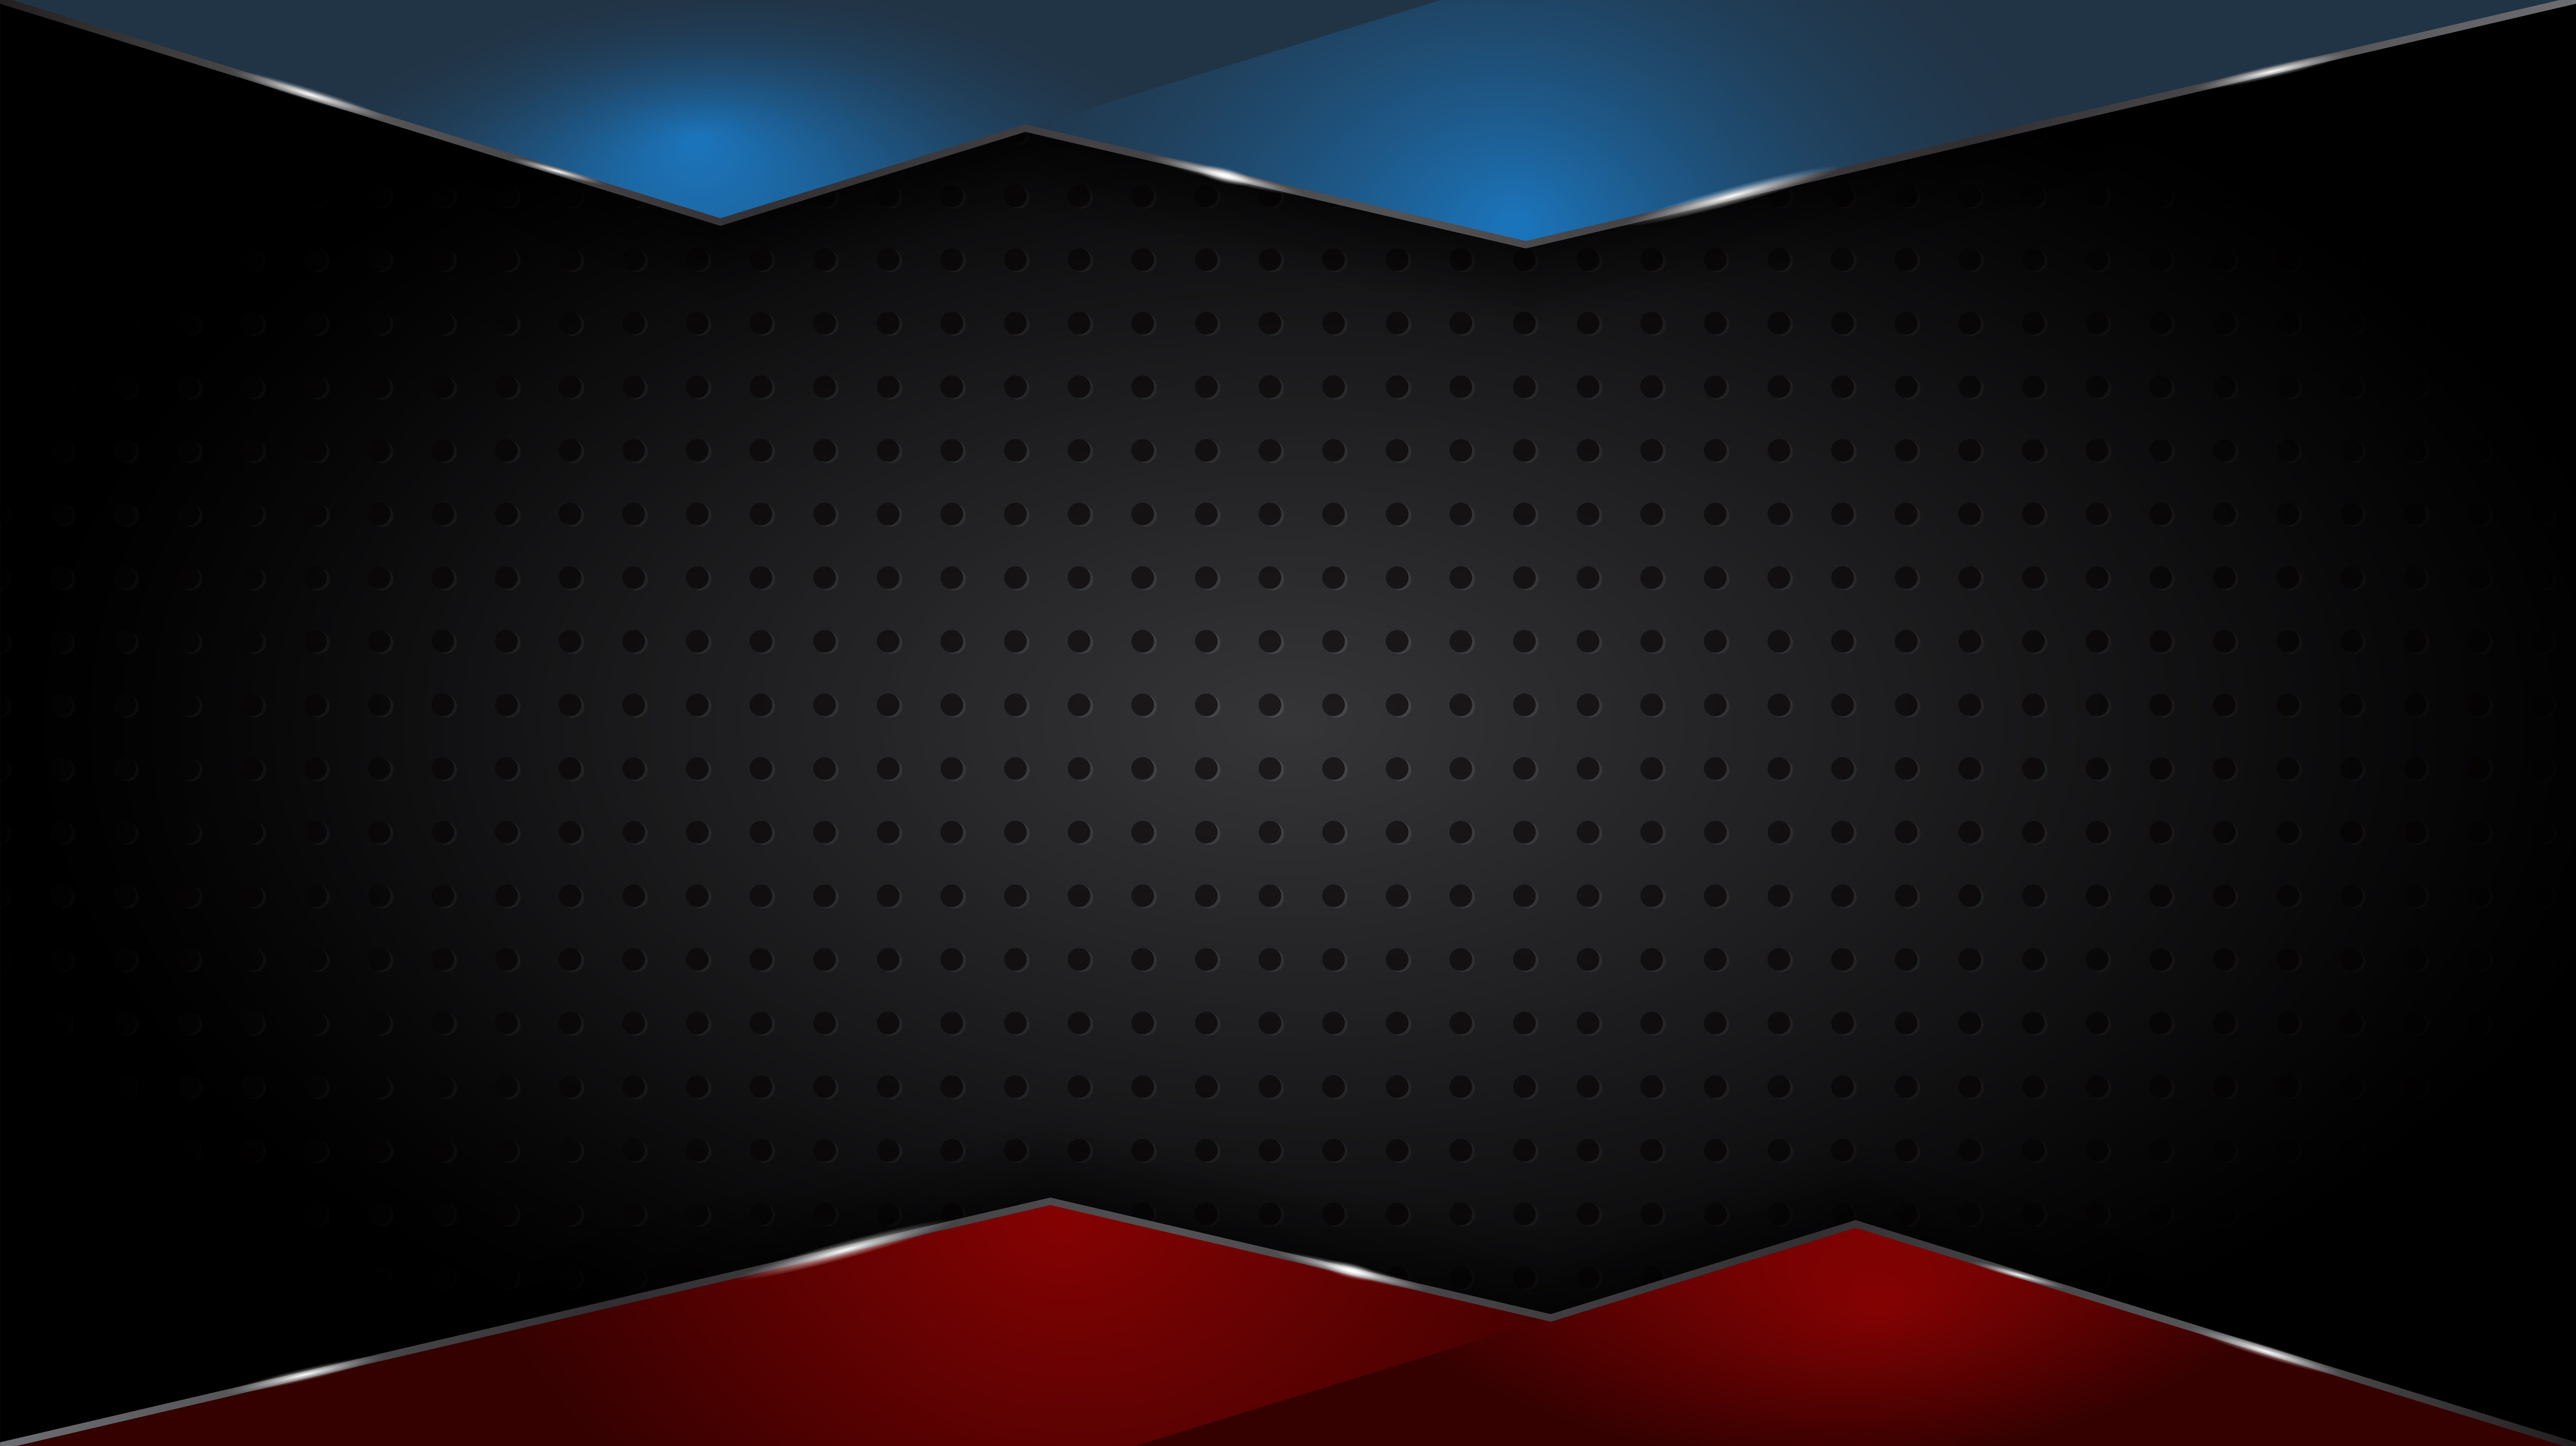 Black Abstract Mat Geometric Red And Blue Background Elegant Futuristic Glossy Red And Blue Ligh In 2021 Poster Background Design Black Abstract Black Wallpaper Iphone